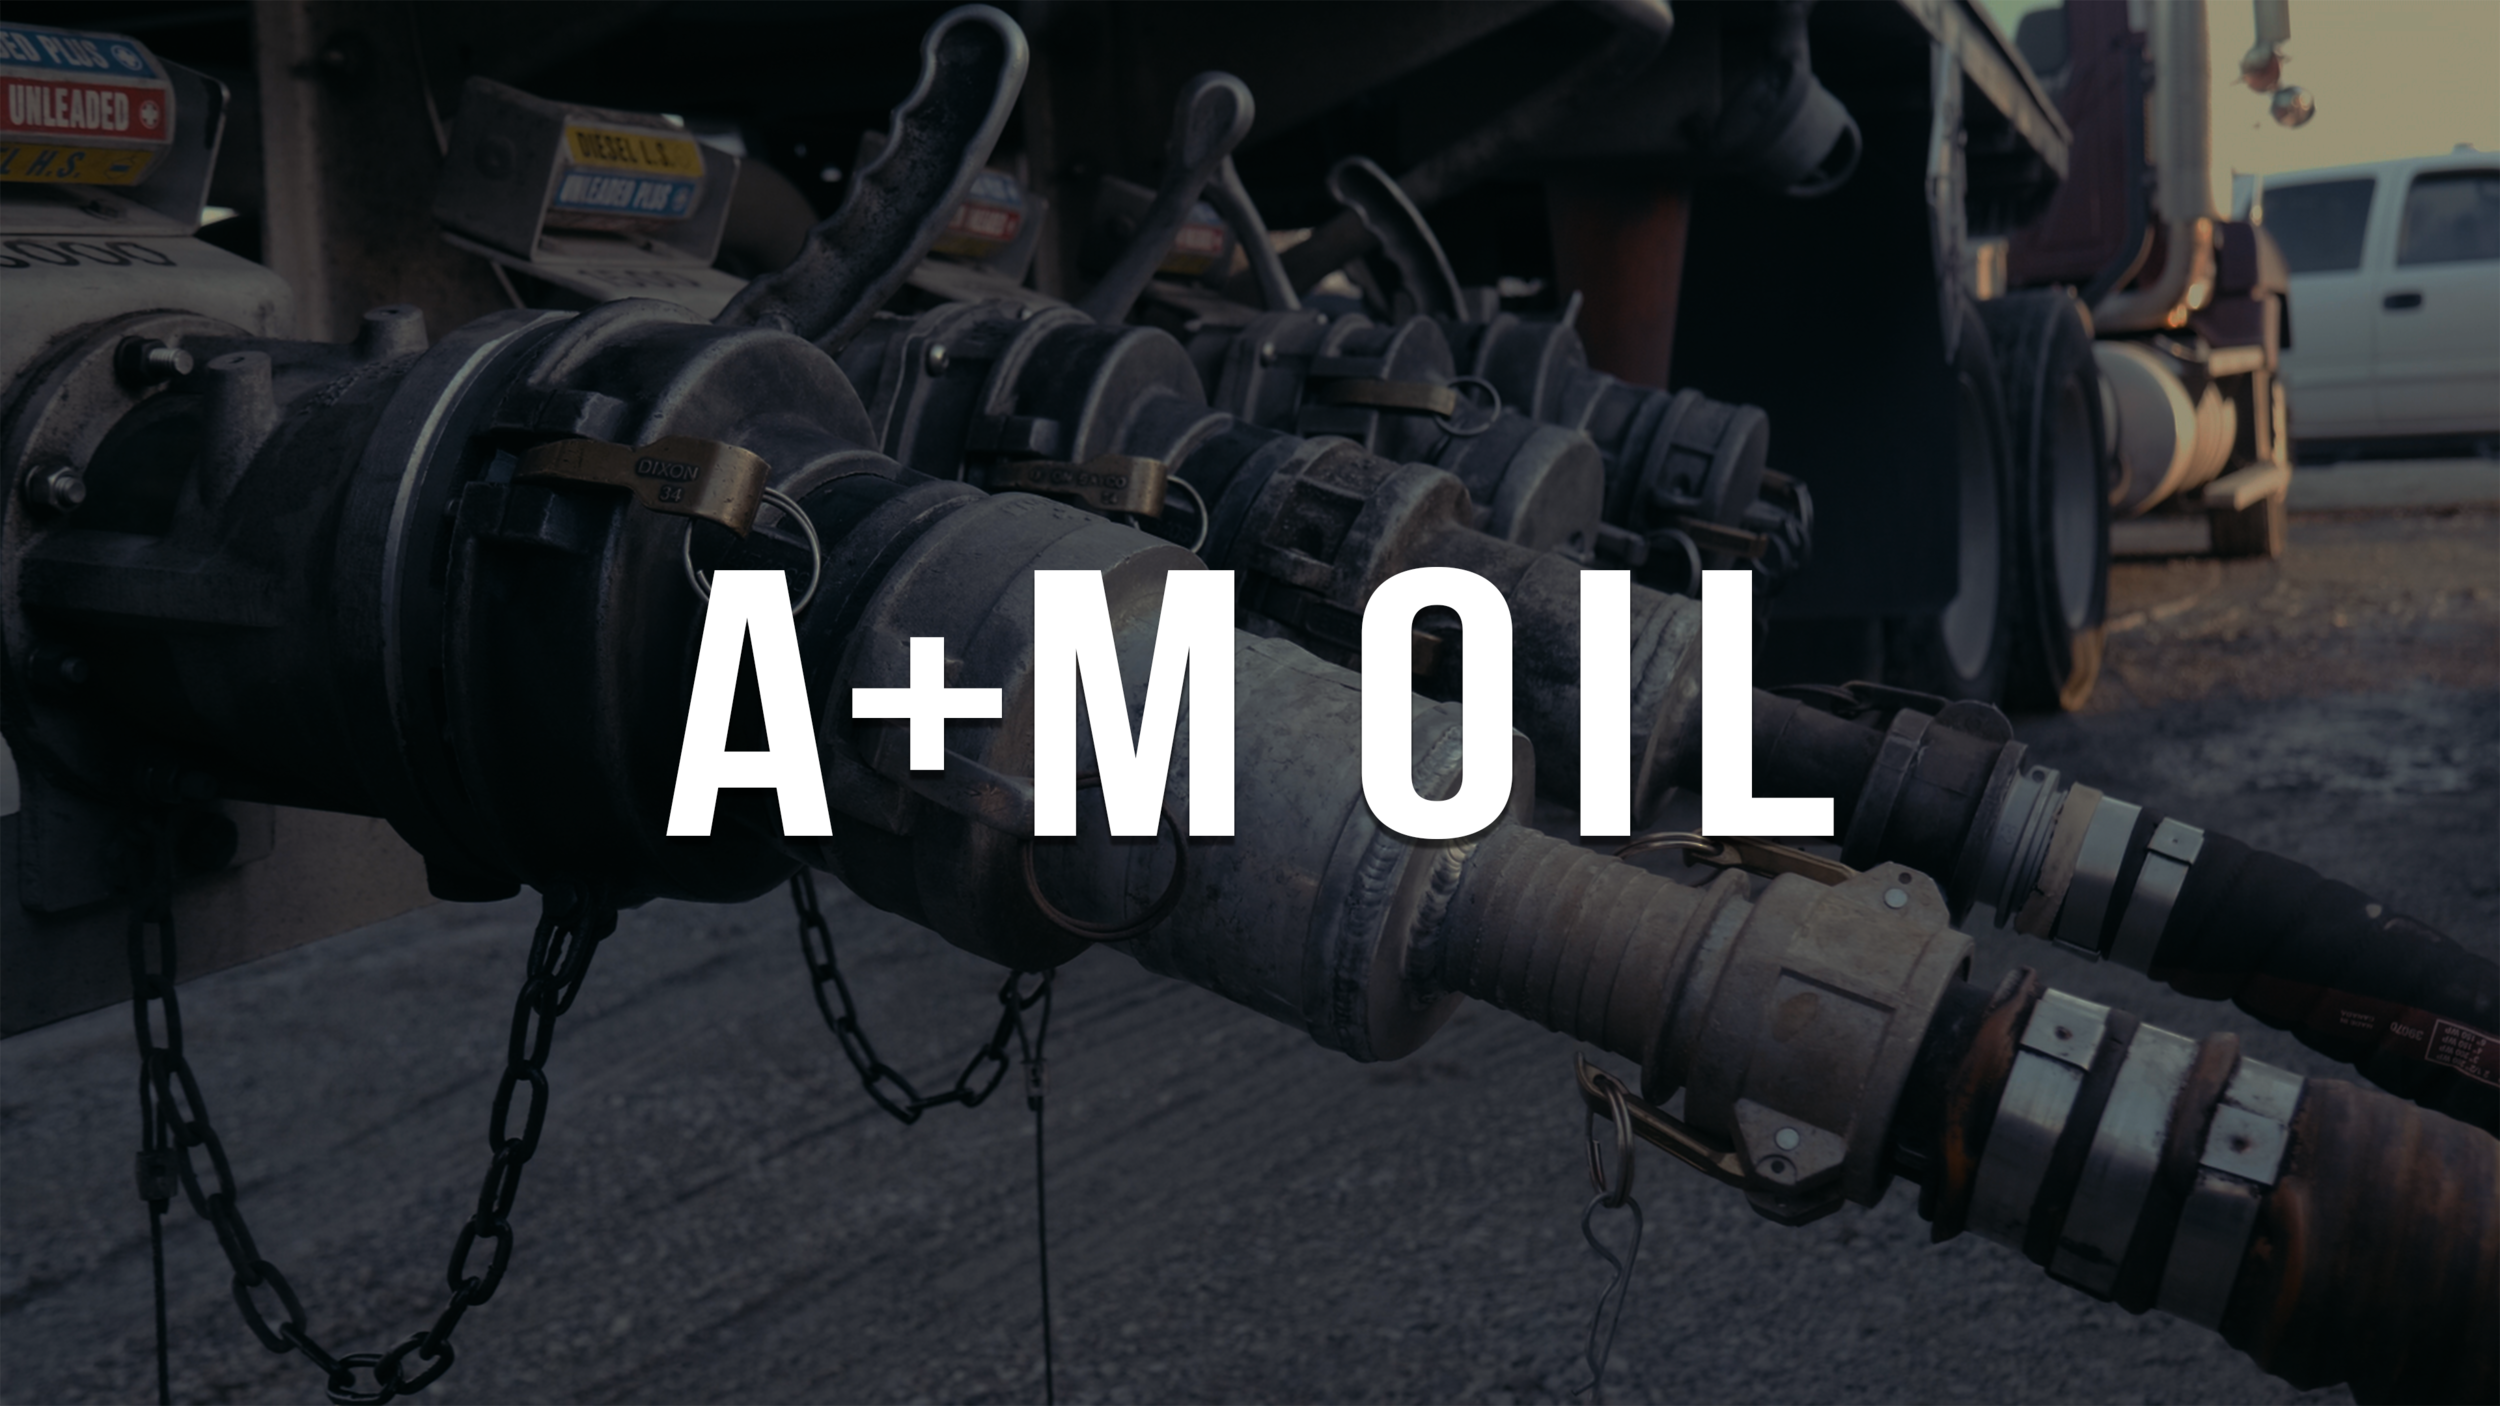 A+M OIl_1.1.1.png